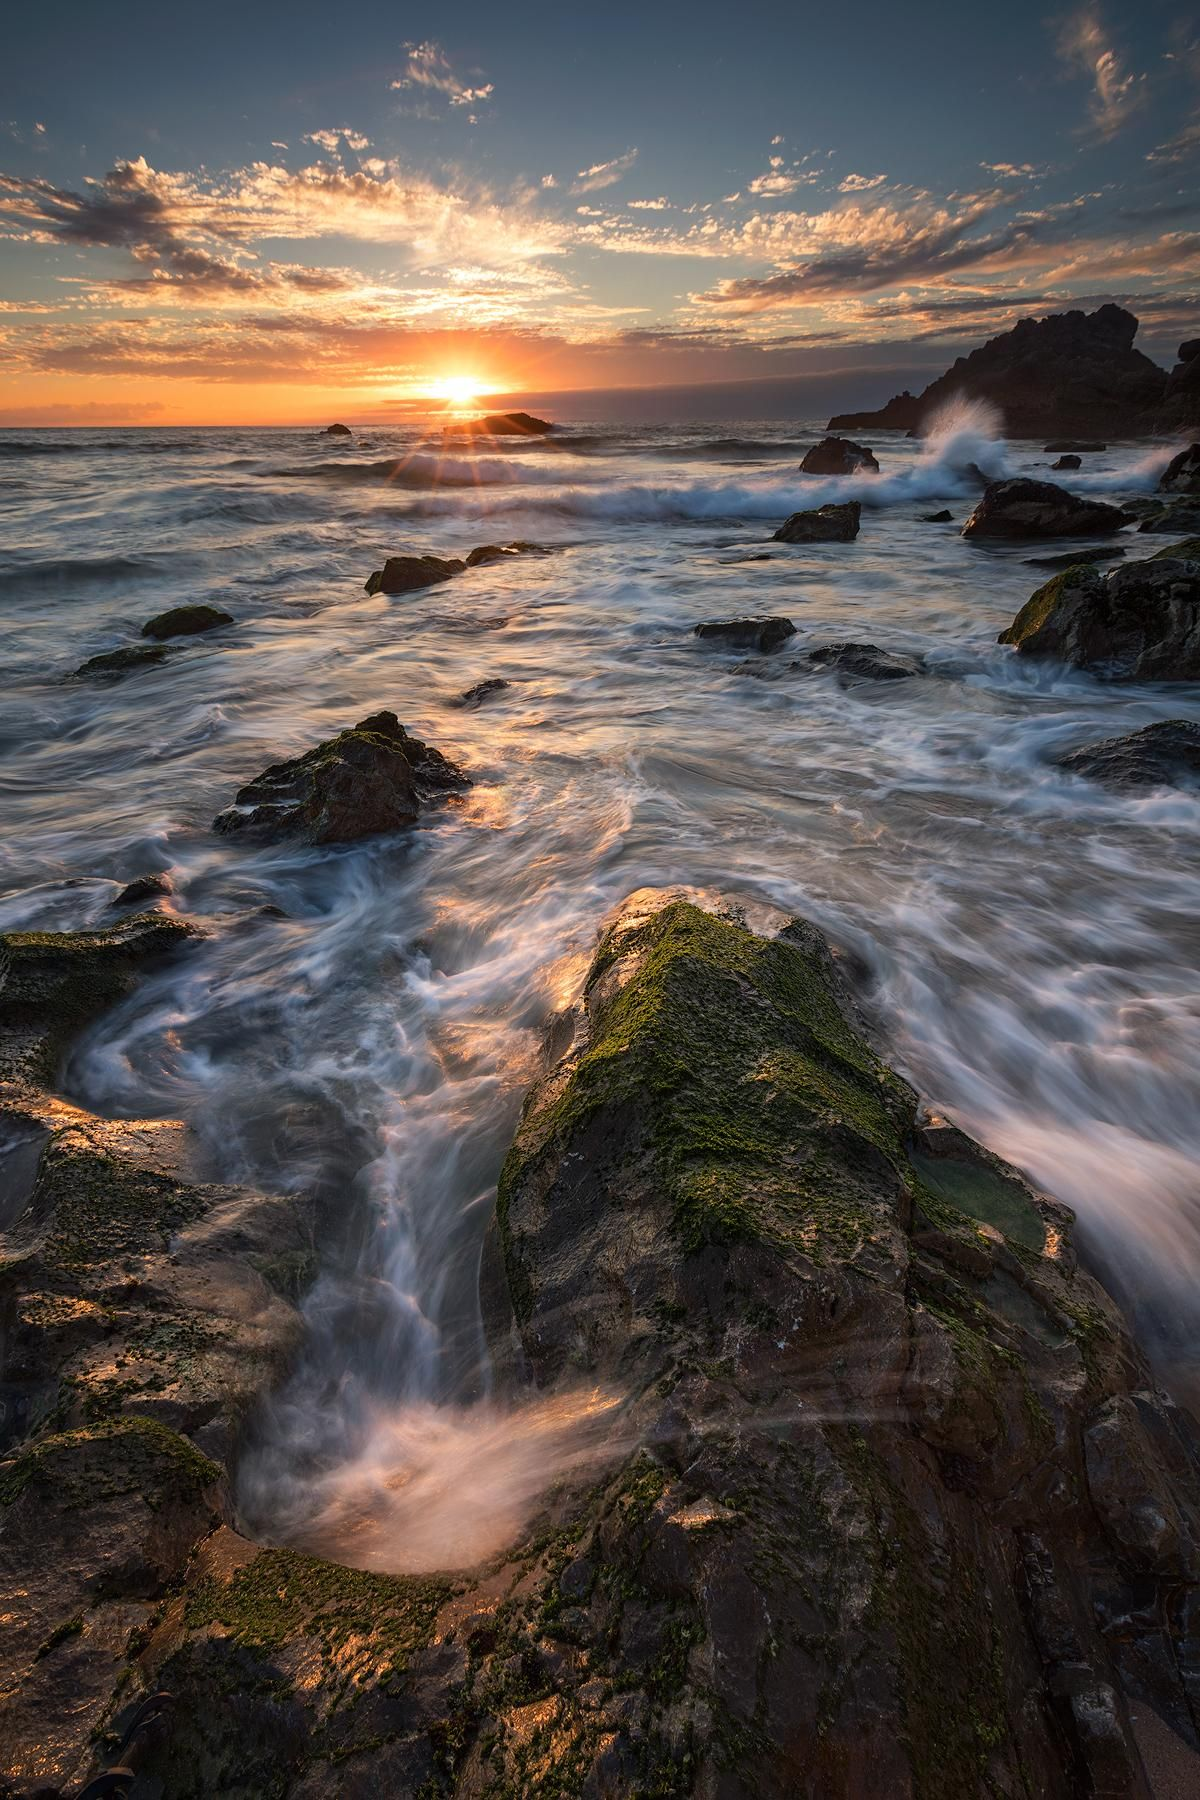 Dance of waves during setting sun on the coast of the